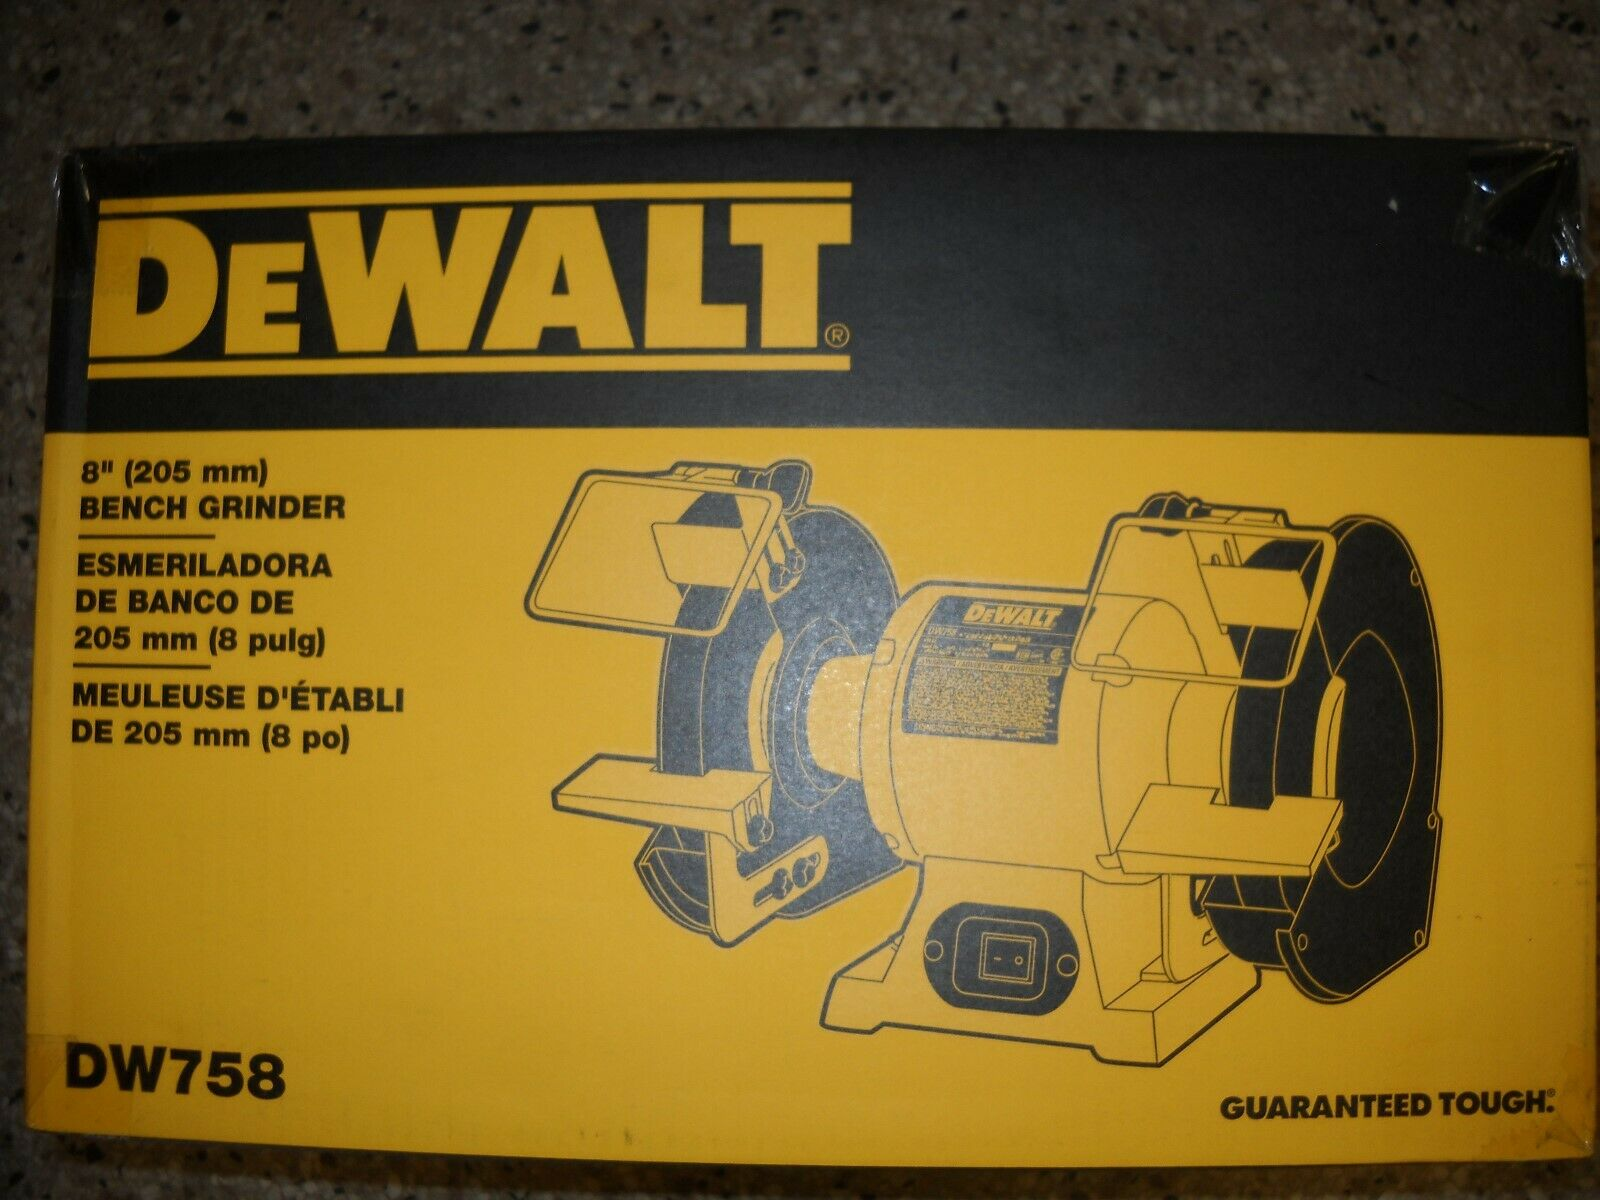 Incredible Dewalt Dw758 8 Heavy Duty Bench Top 36 60 Grit Grinder Tool 3 4 Hp 3600 Rpm New Caraccident5 Cool Chair Designs And Ideas Caraccident5Info